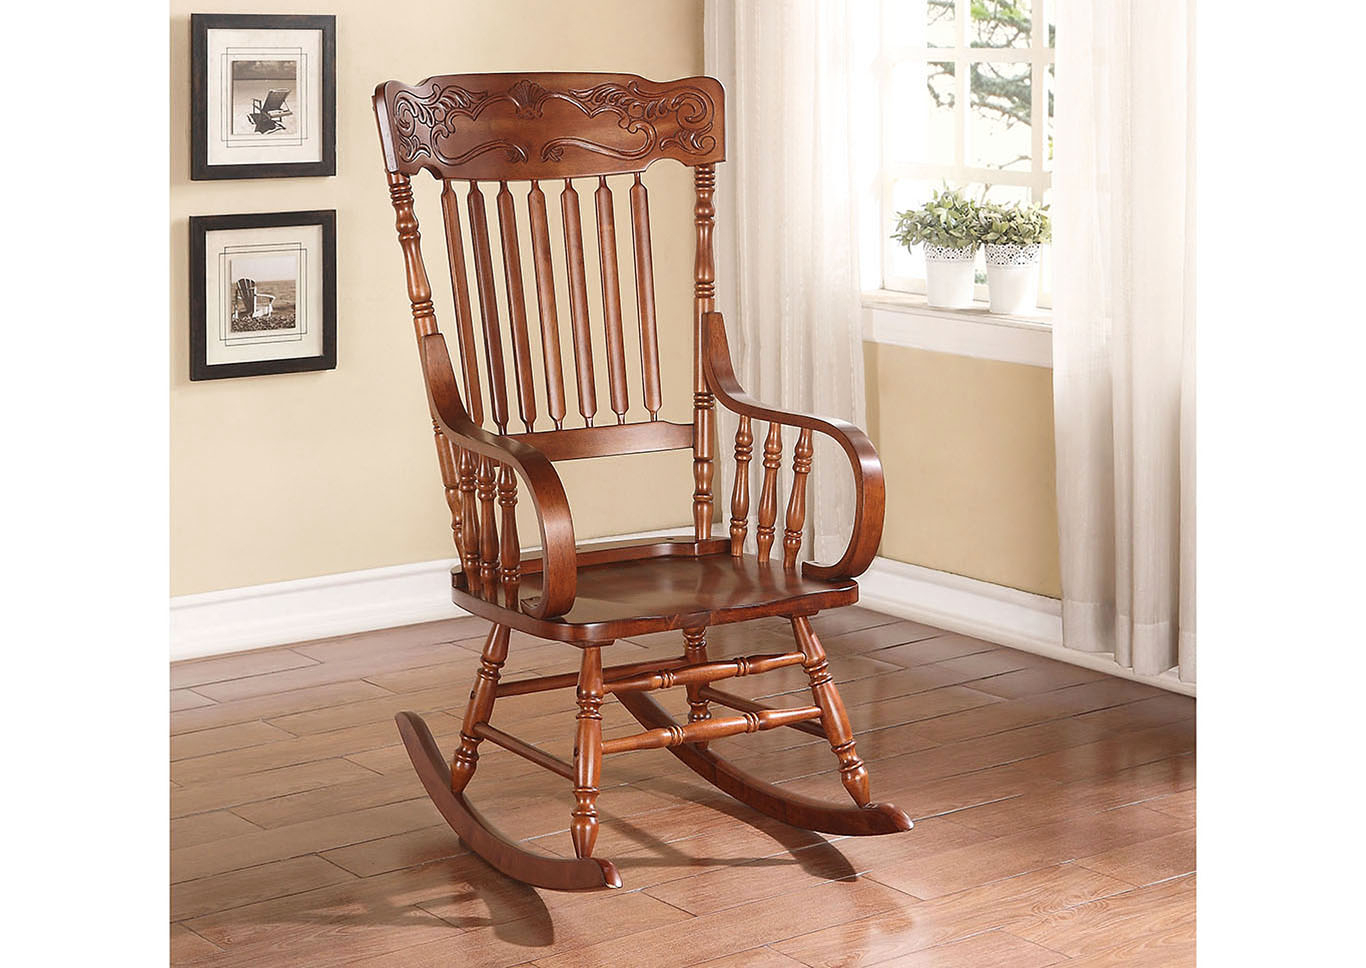 Spark Furniture Kloris Tobacco Rocking Chair Pertaining To Tobacco Brown Kids Rocking Chairs (View 8 of 20)